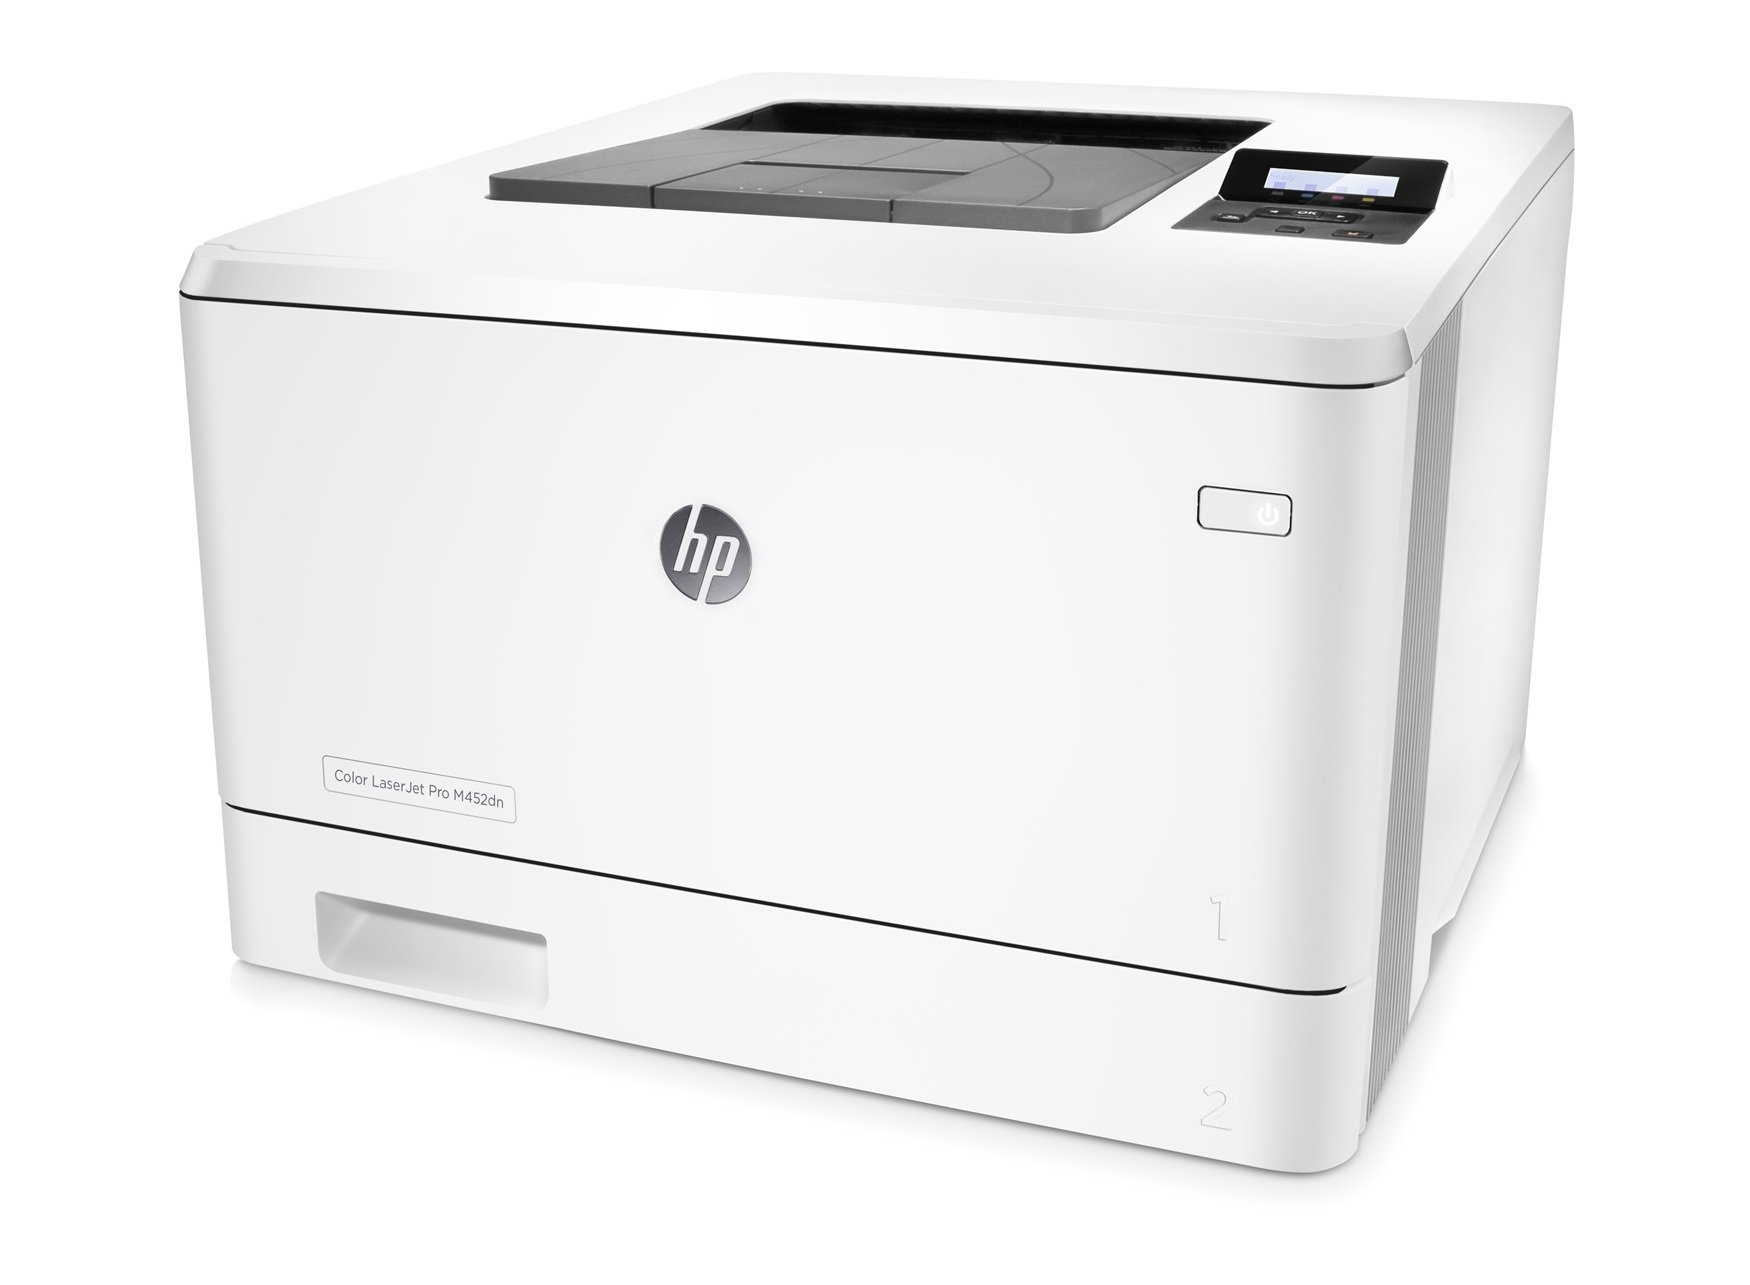 HP Color LaserJet Pro 400 M452dn (A4, 27 ppm, USB 2.0, Ethernet, Duplex)